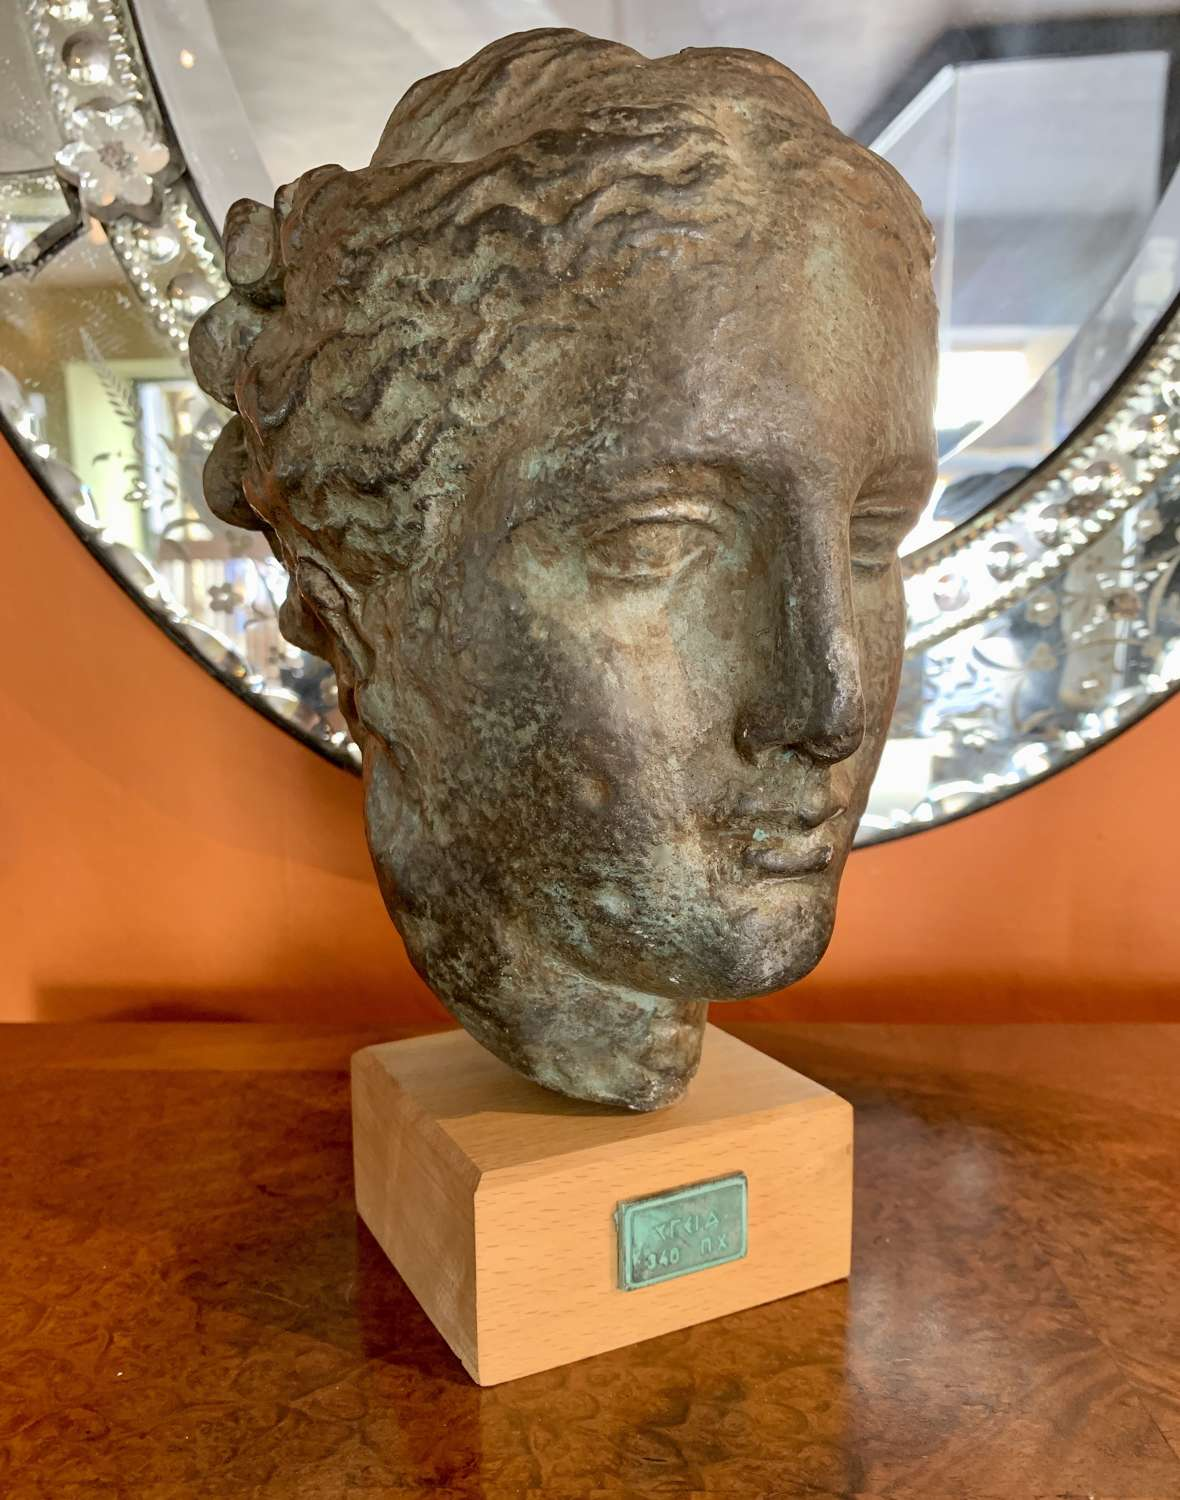 After The Antique Bust of Hygeia, Greek Goddess of Health